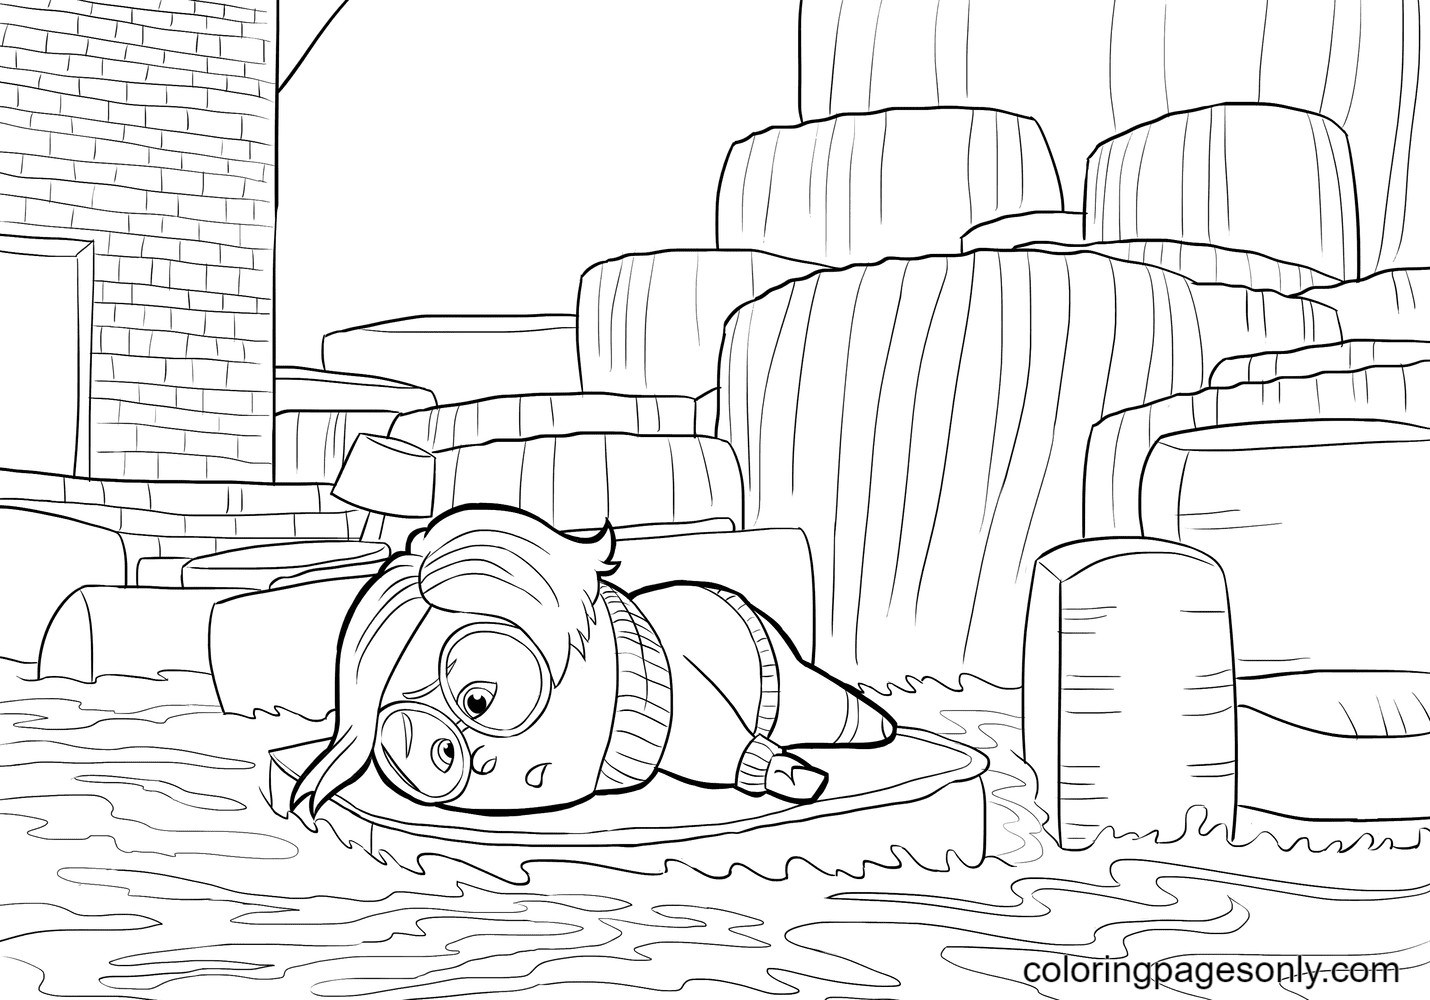 Sadness From Inside Out Coloring Page